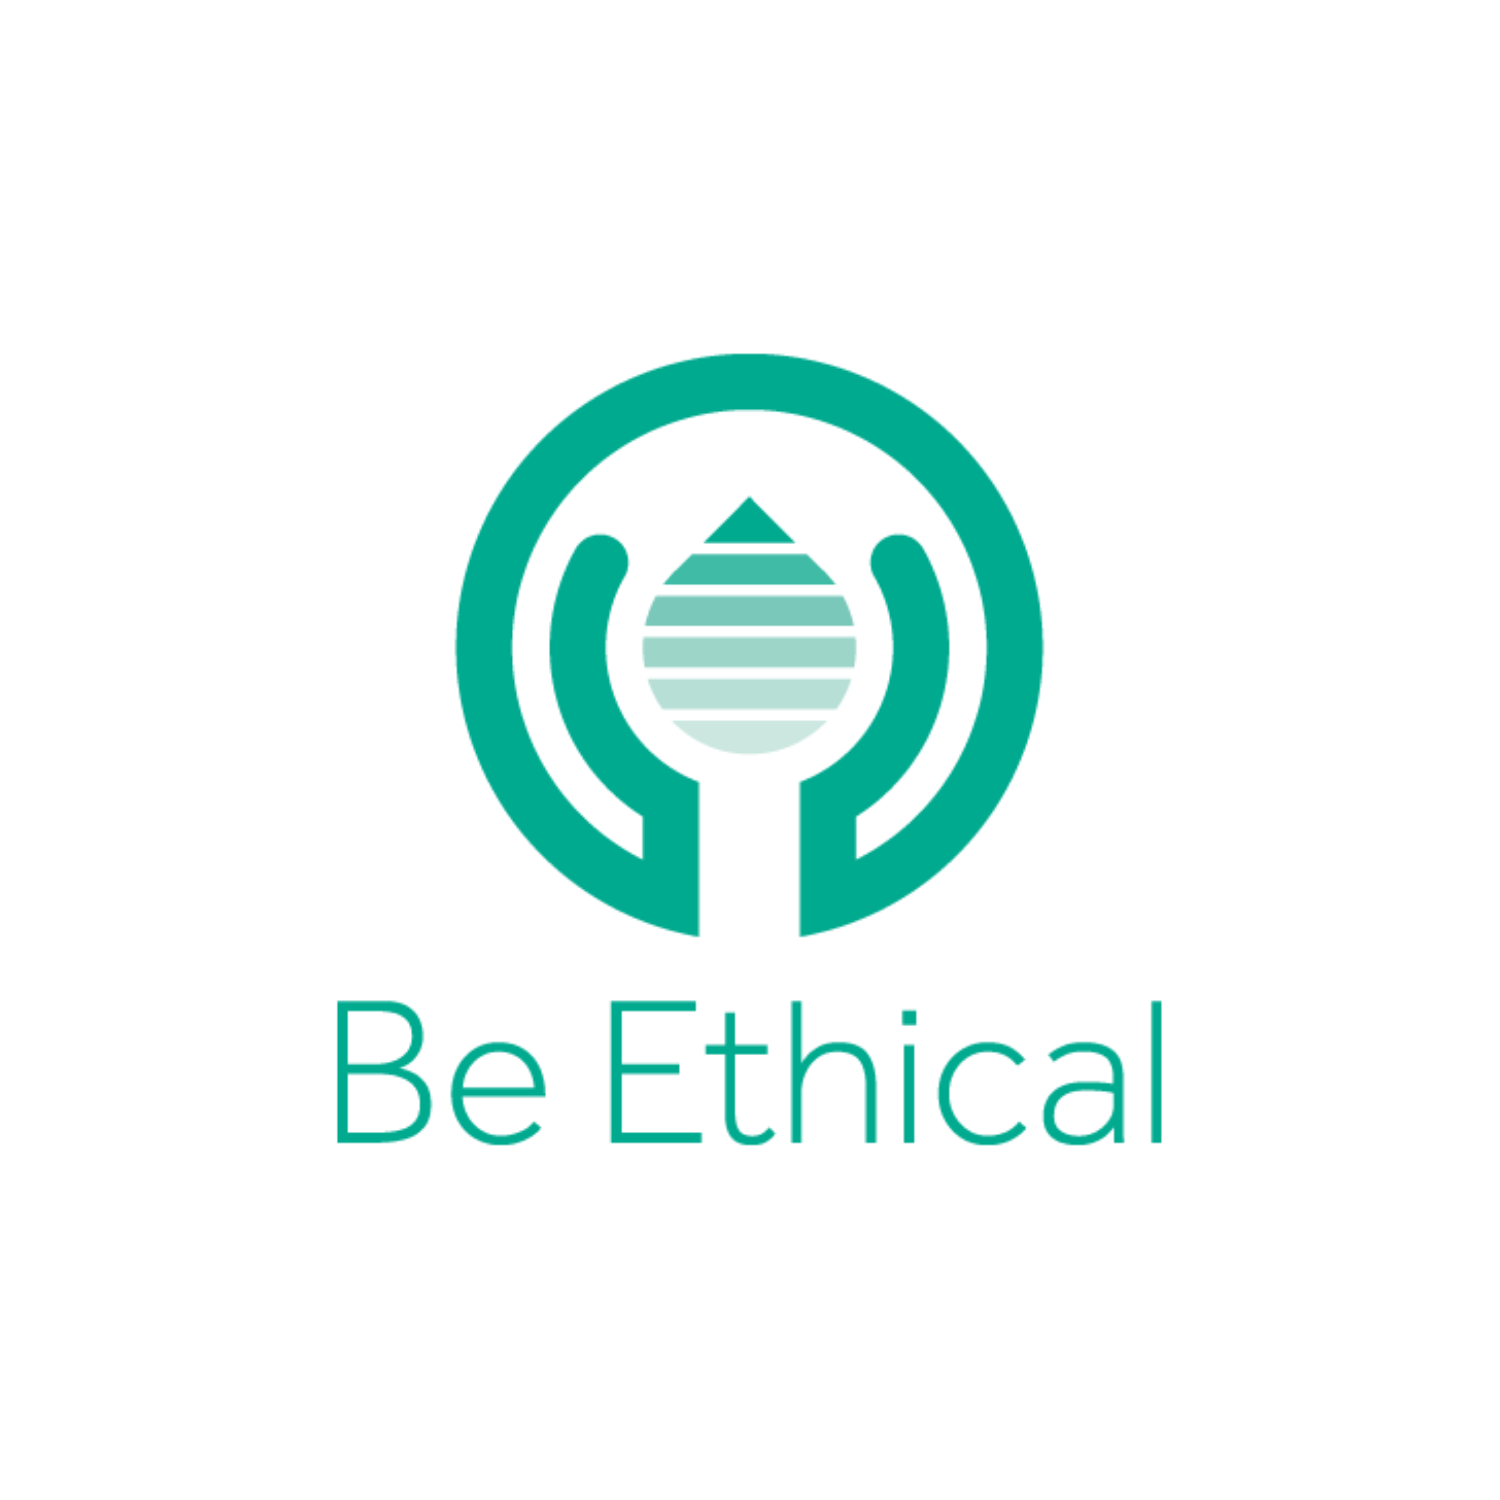 Be Ethical